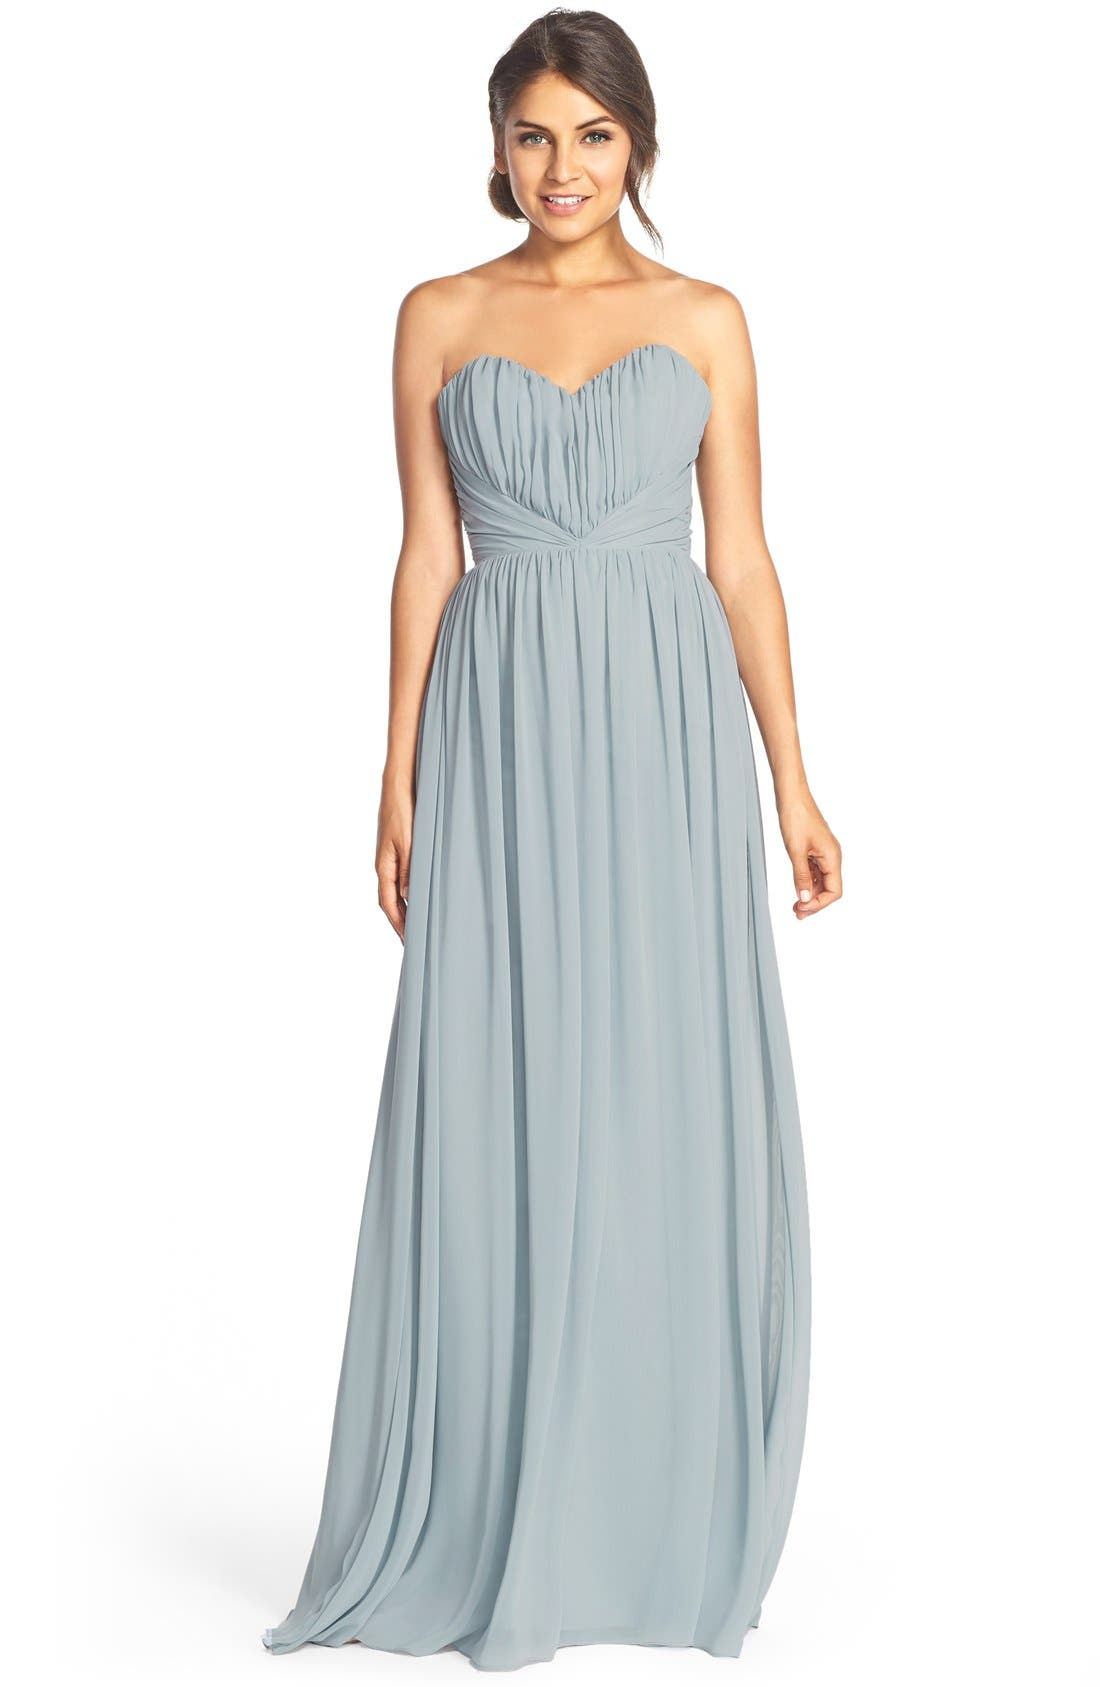 Main Image - Jim Hjelm Occasions Strapless Chiffon Sweetheart A-Line Gown